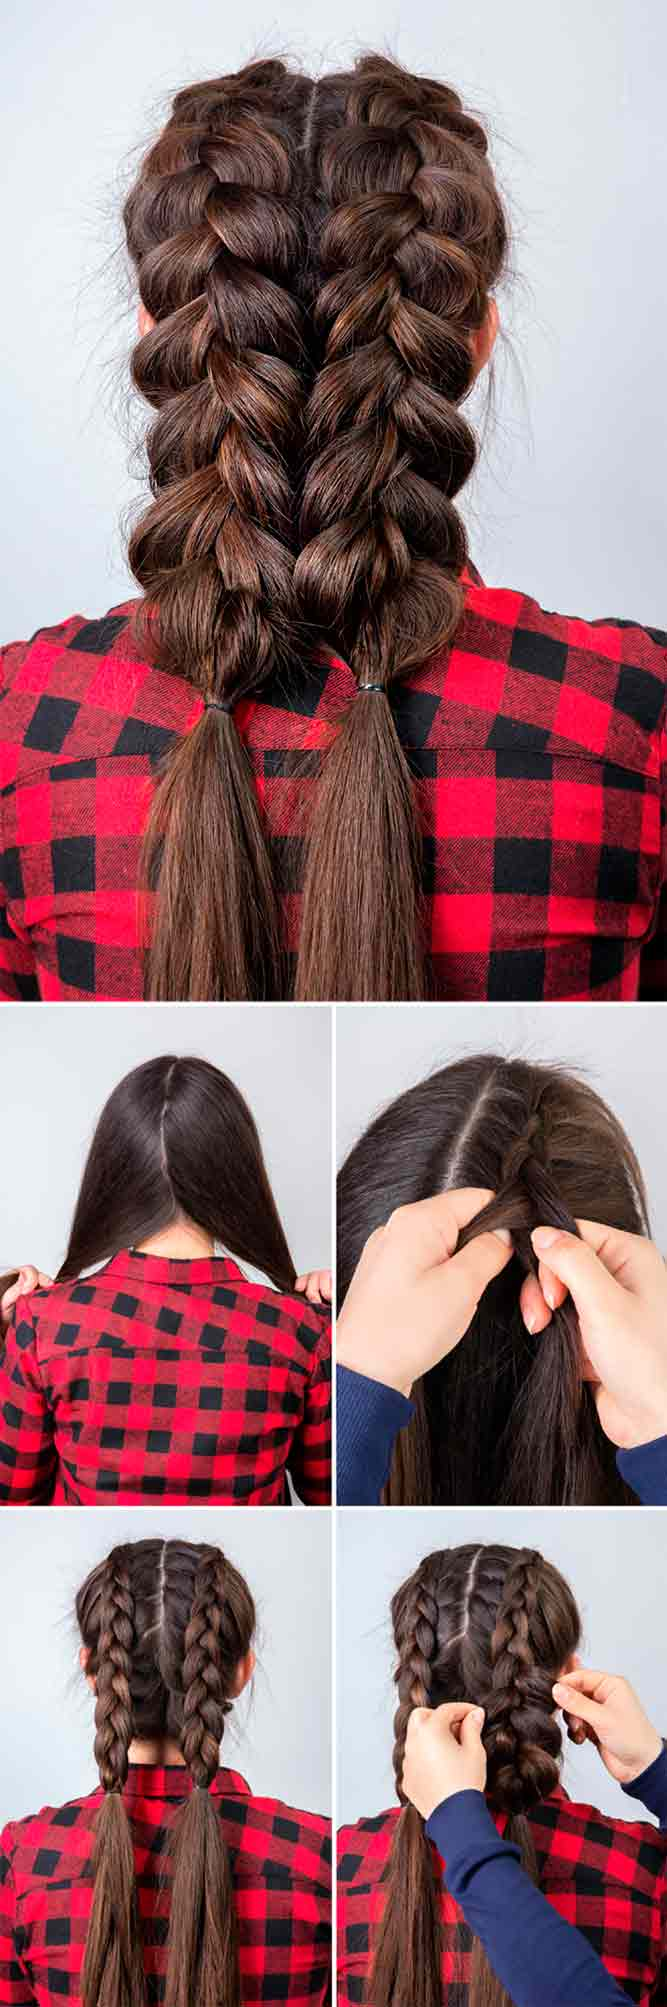 Braided Pigtails #tutorial #hairtutorial